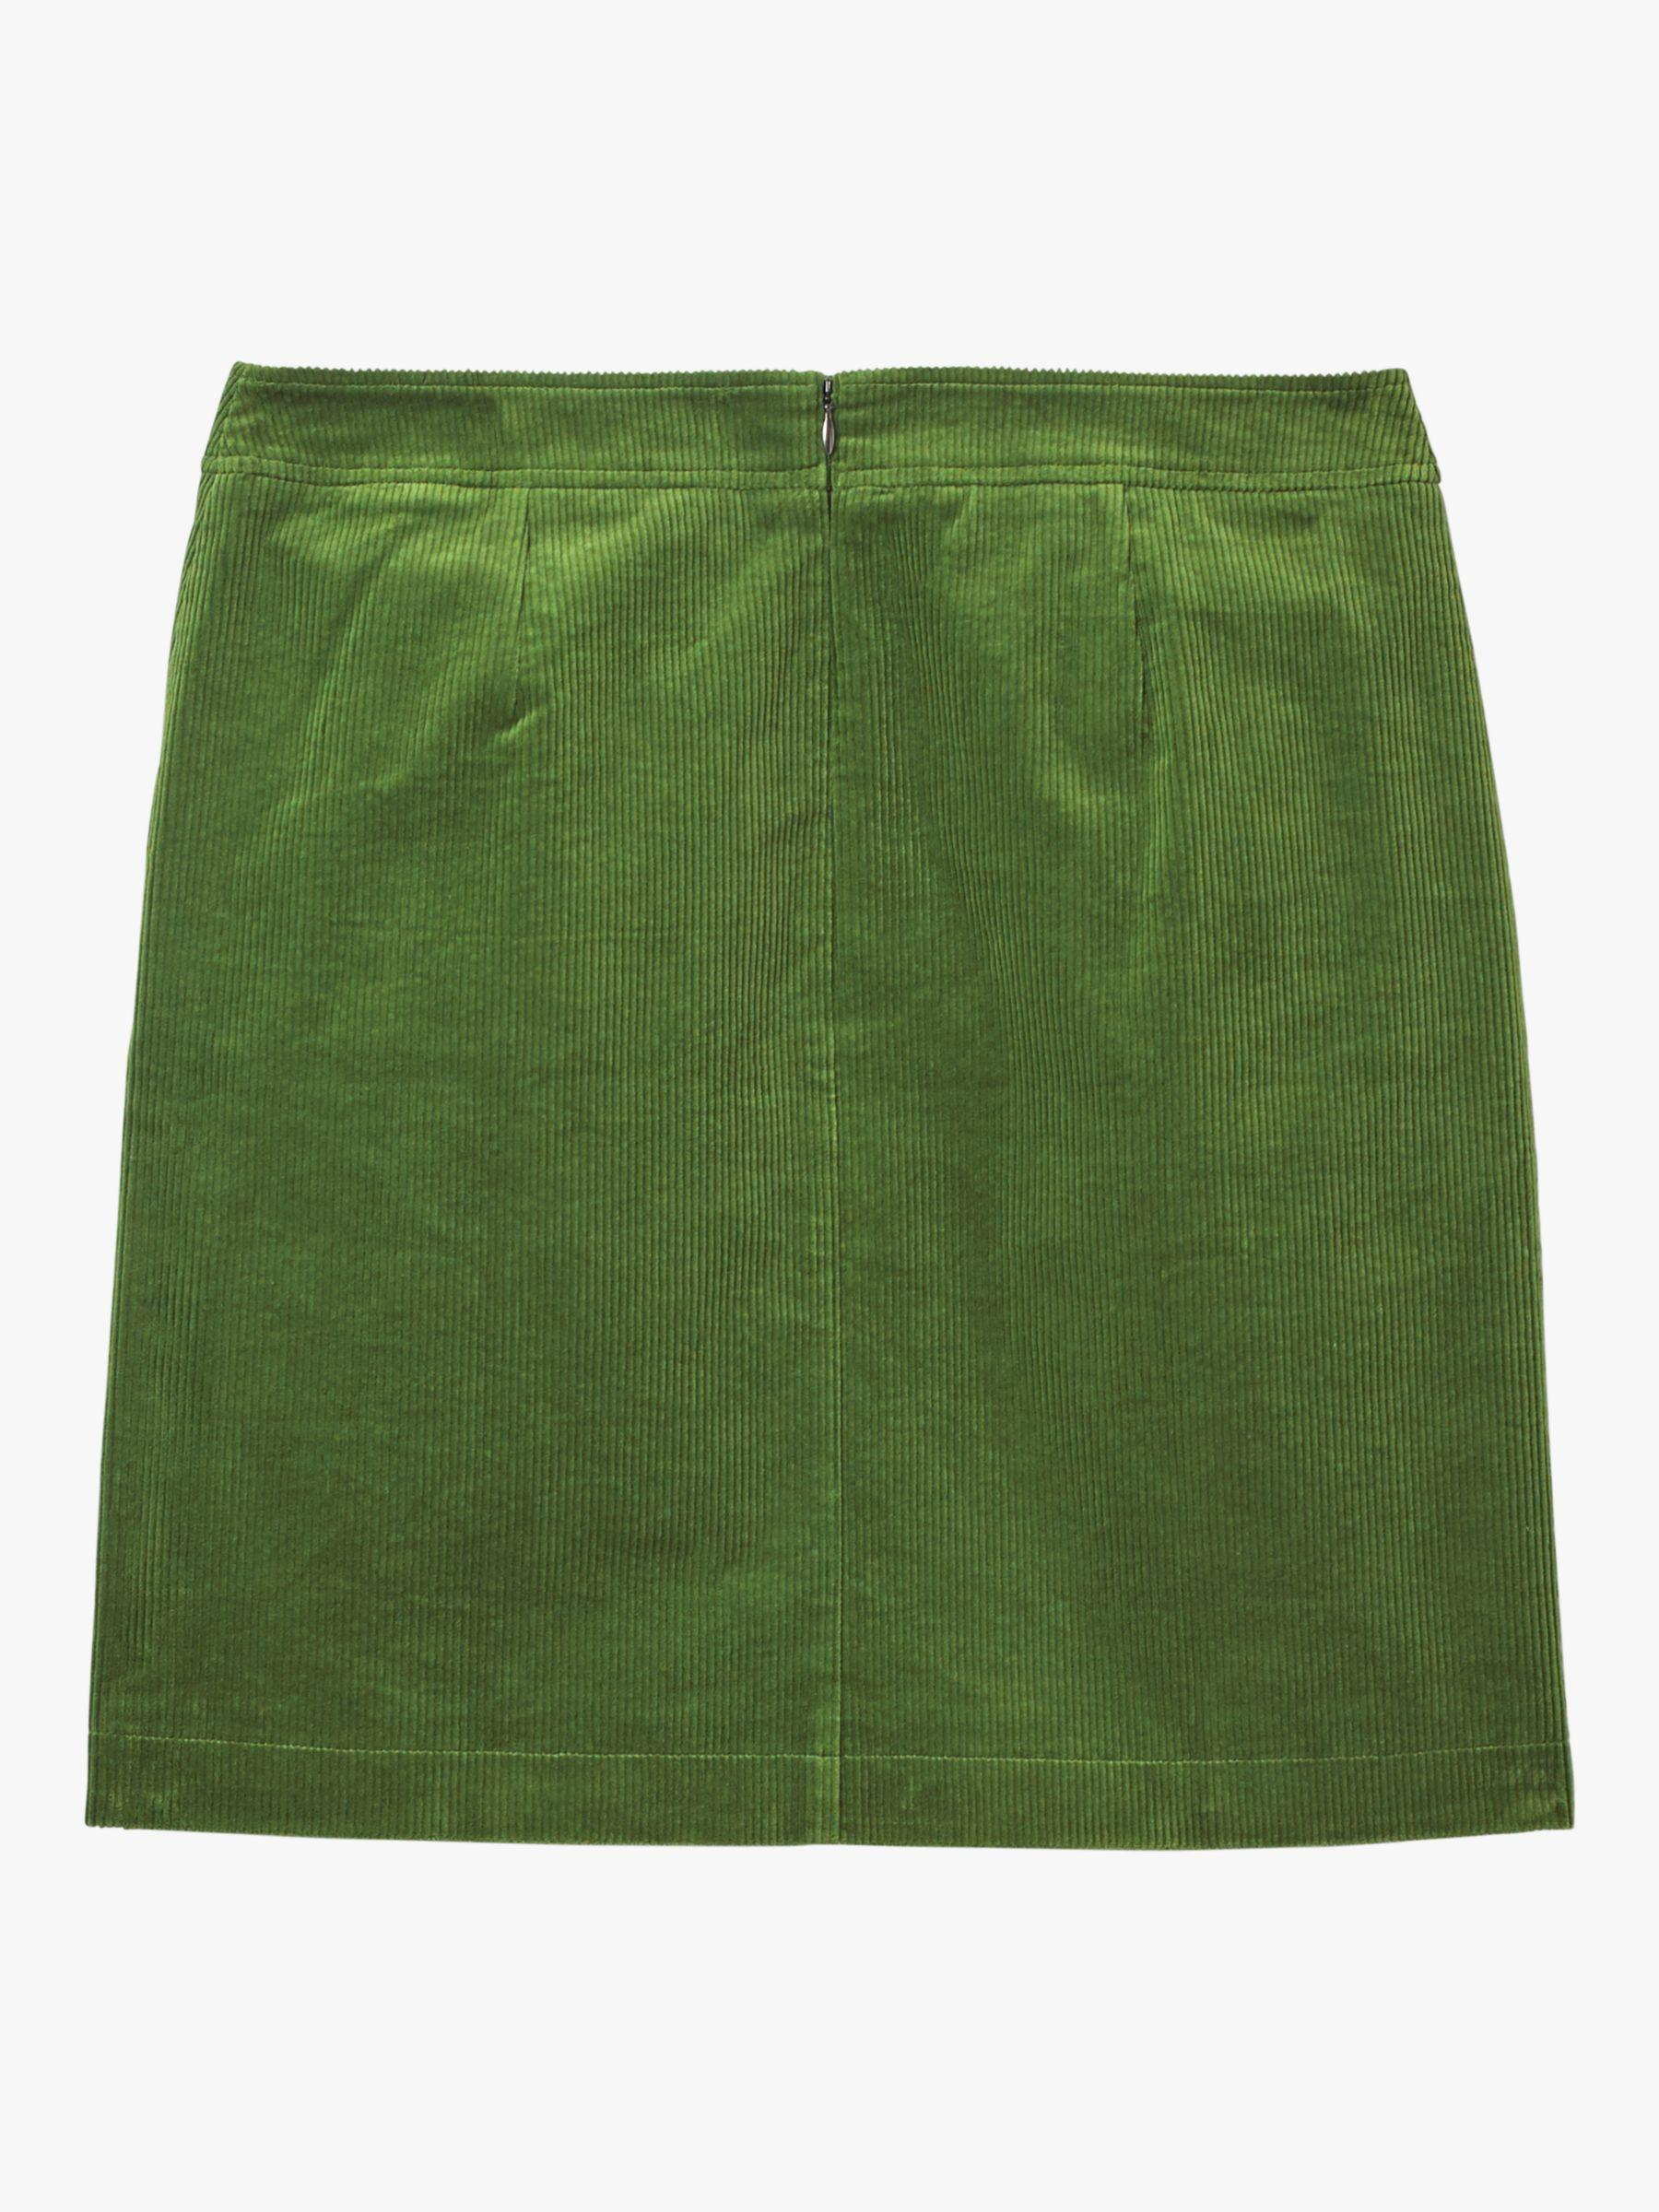 128681cc9 White Stuff Iris Cord A-line Skirt in Green - Save 31% - Lyst